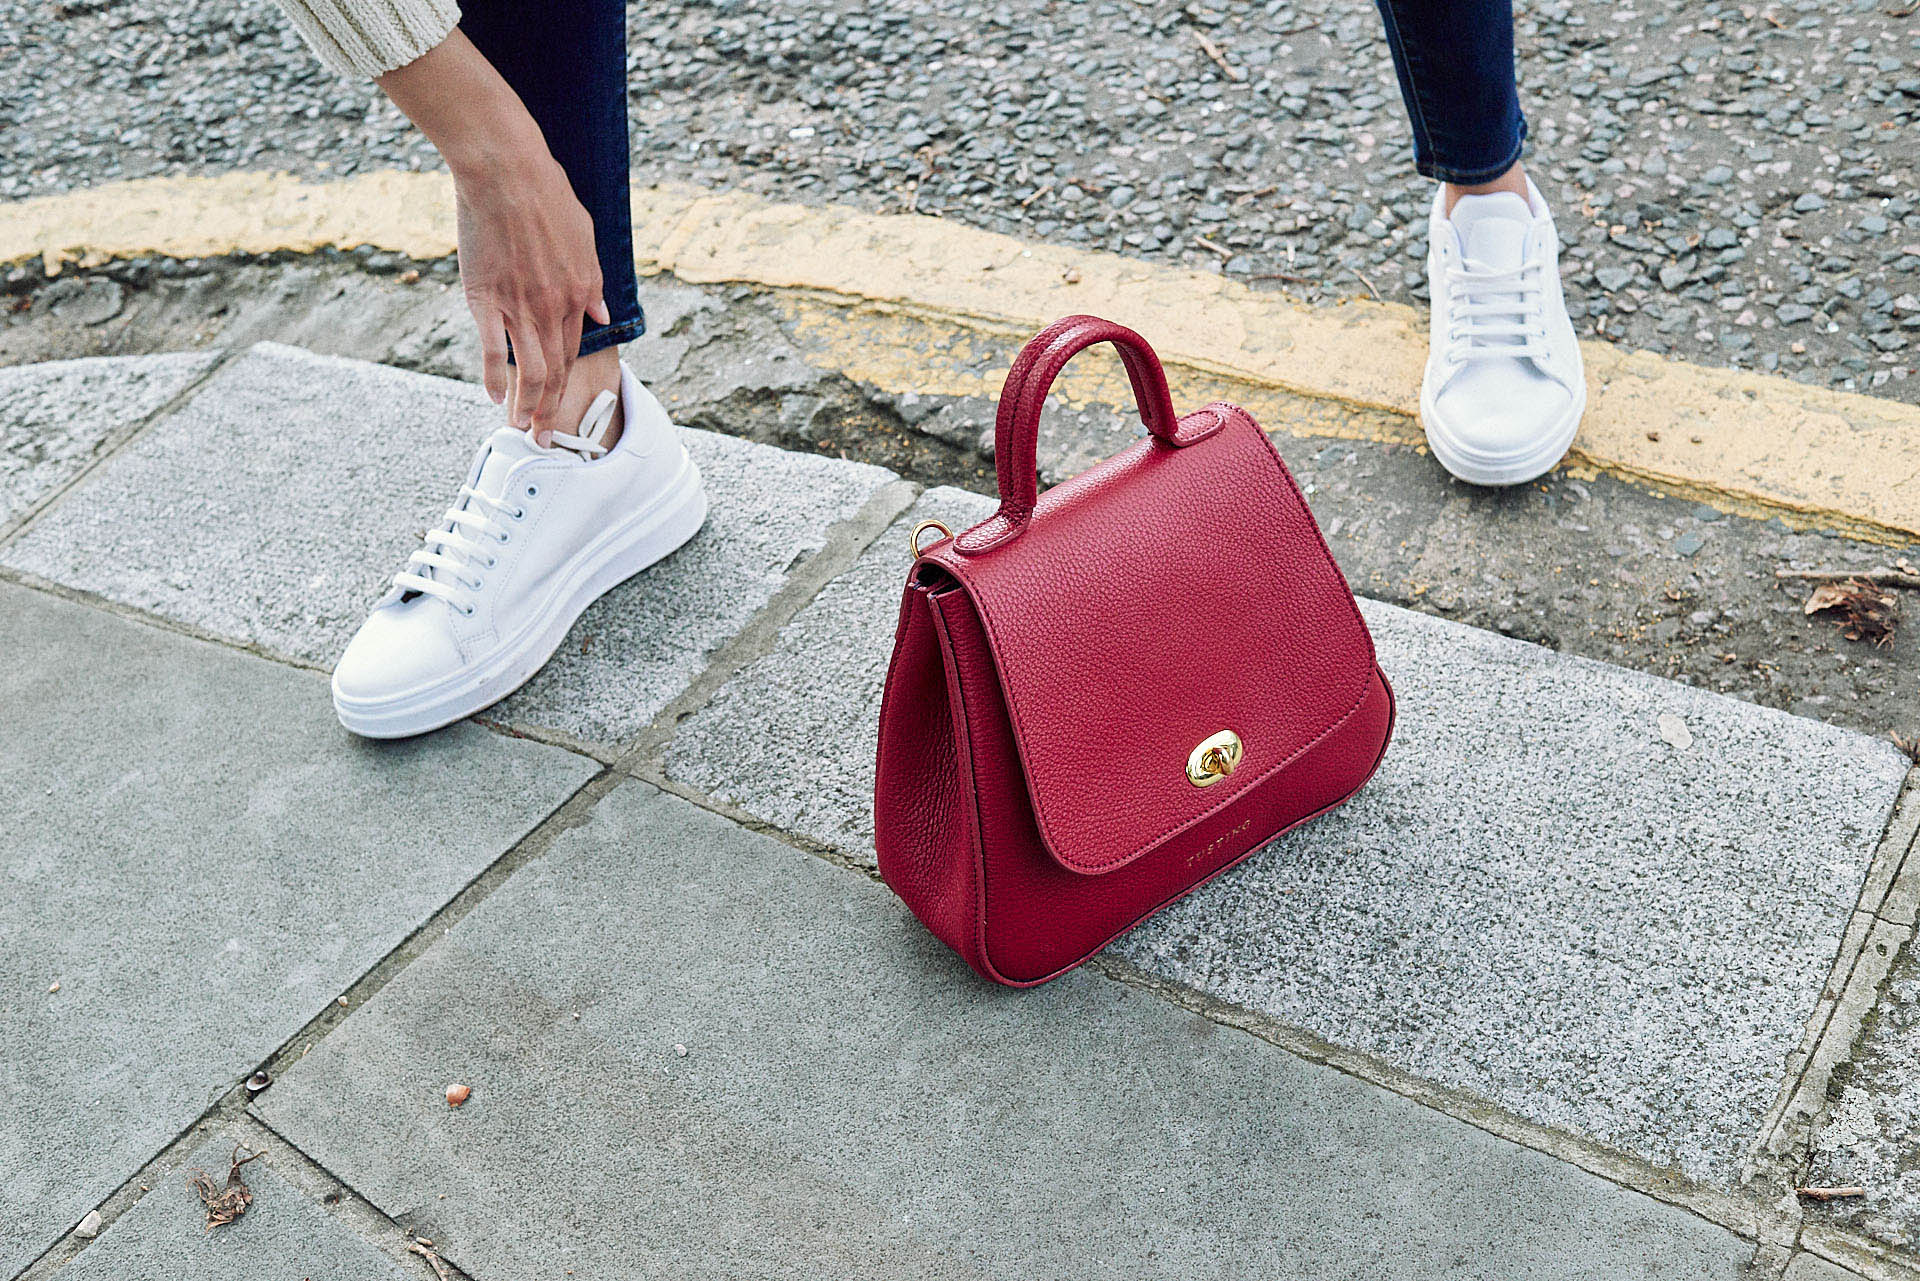 Tusting  red  handbag on pavement, by photographer Tim Cole